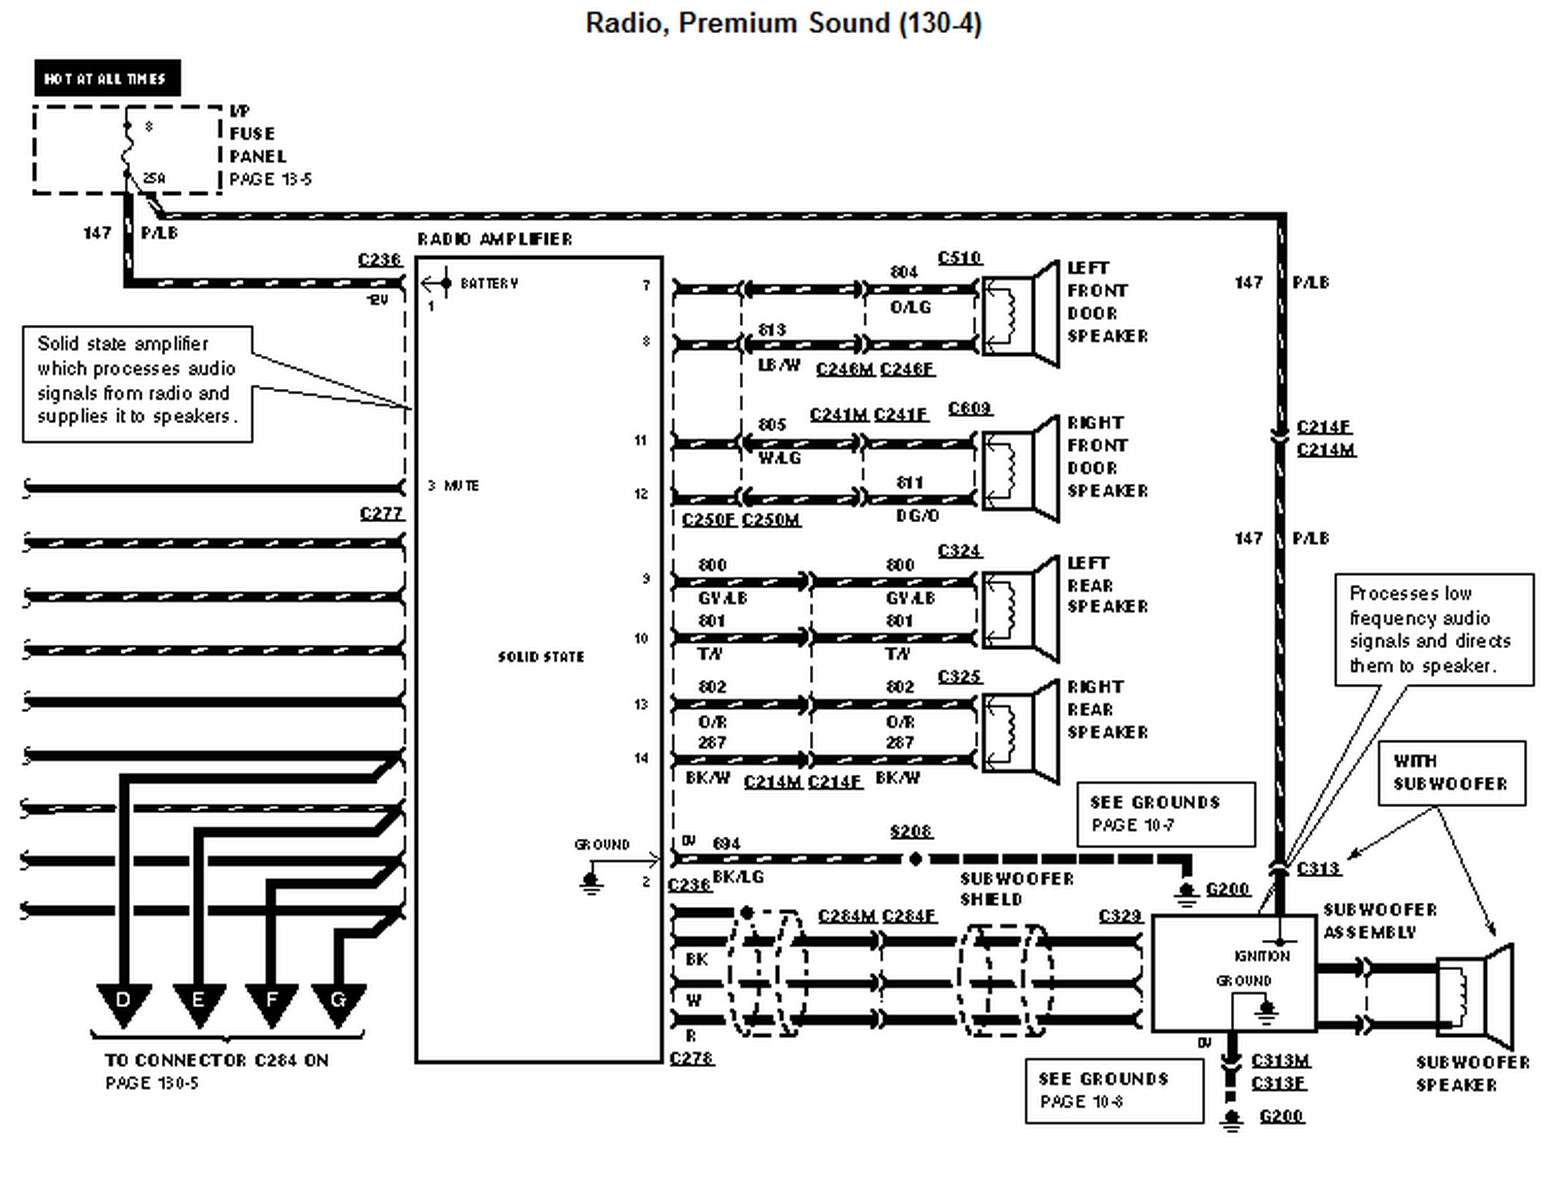 1994 ford F150 Radio Wiring Diagram | Free Wiring Diagram  F Radio Wiring Diagram on maxima wiring diagrams, g6 wiring diagrams, 2011 ford wiring diagrams, e series wiring diagrams, probe wiring diagrams, accord wiring diagrams,